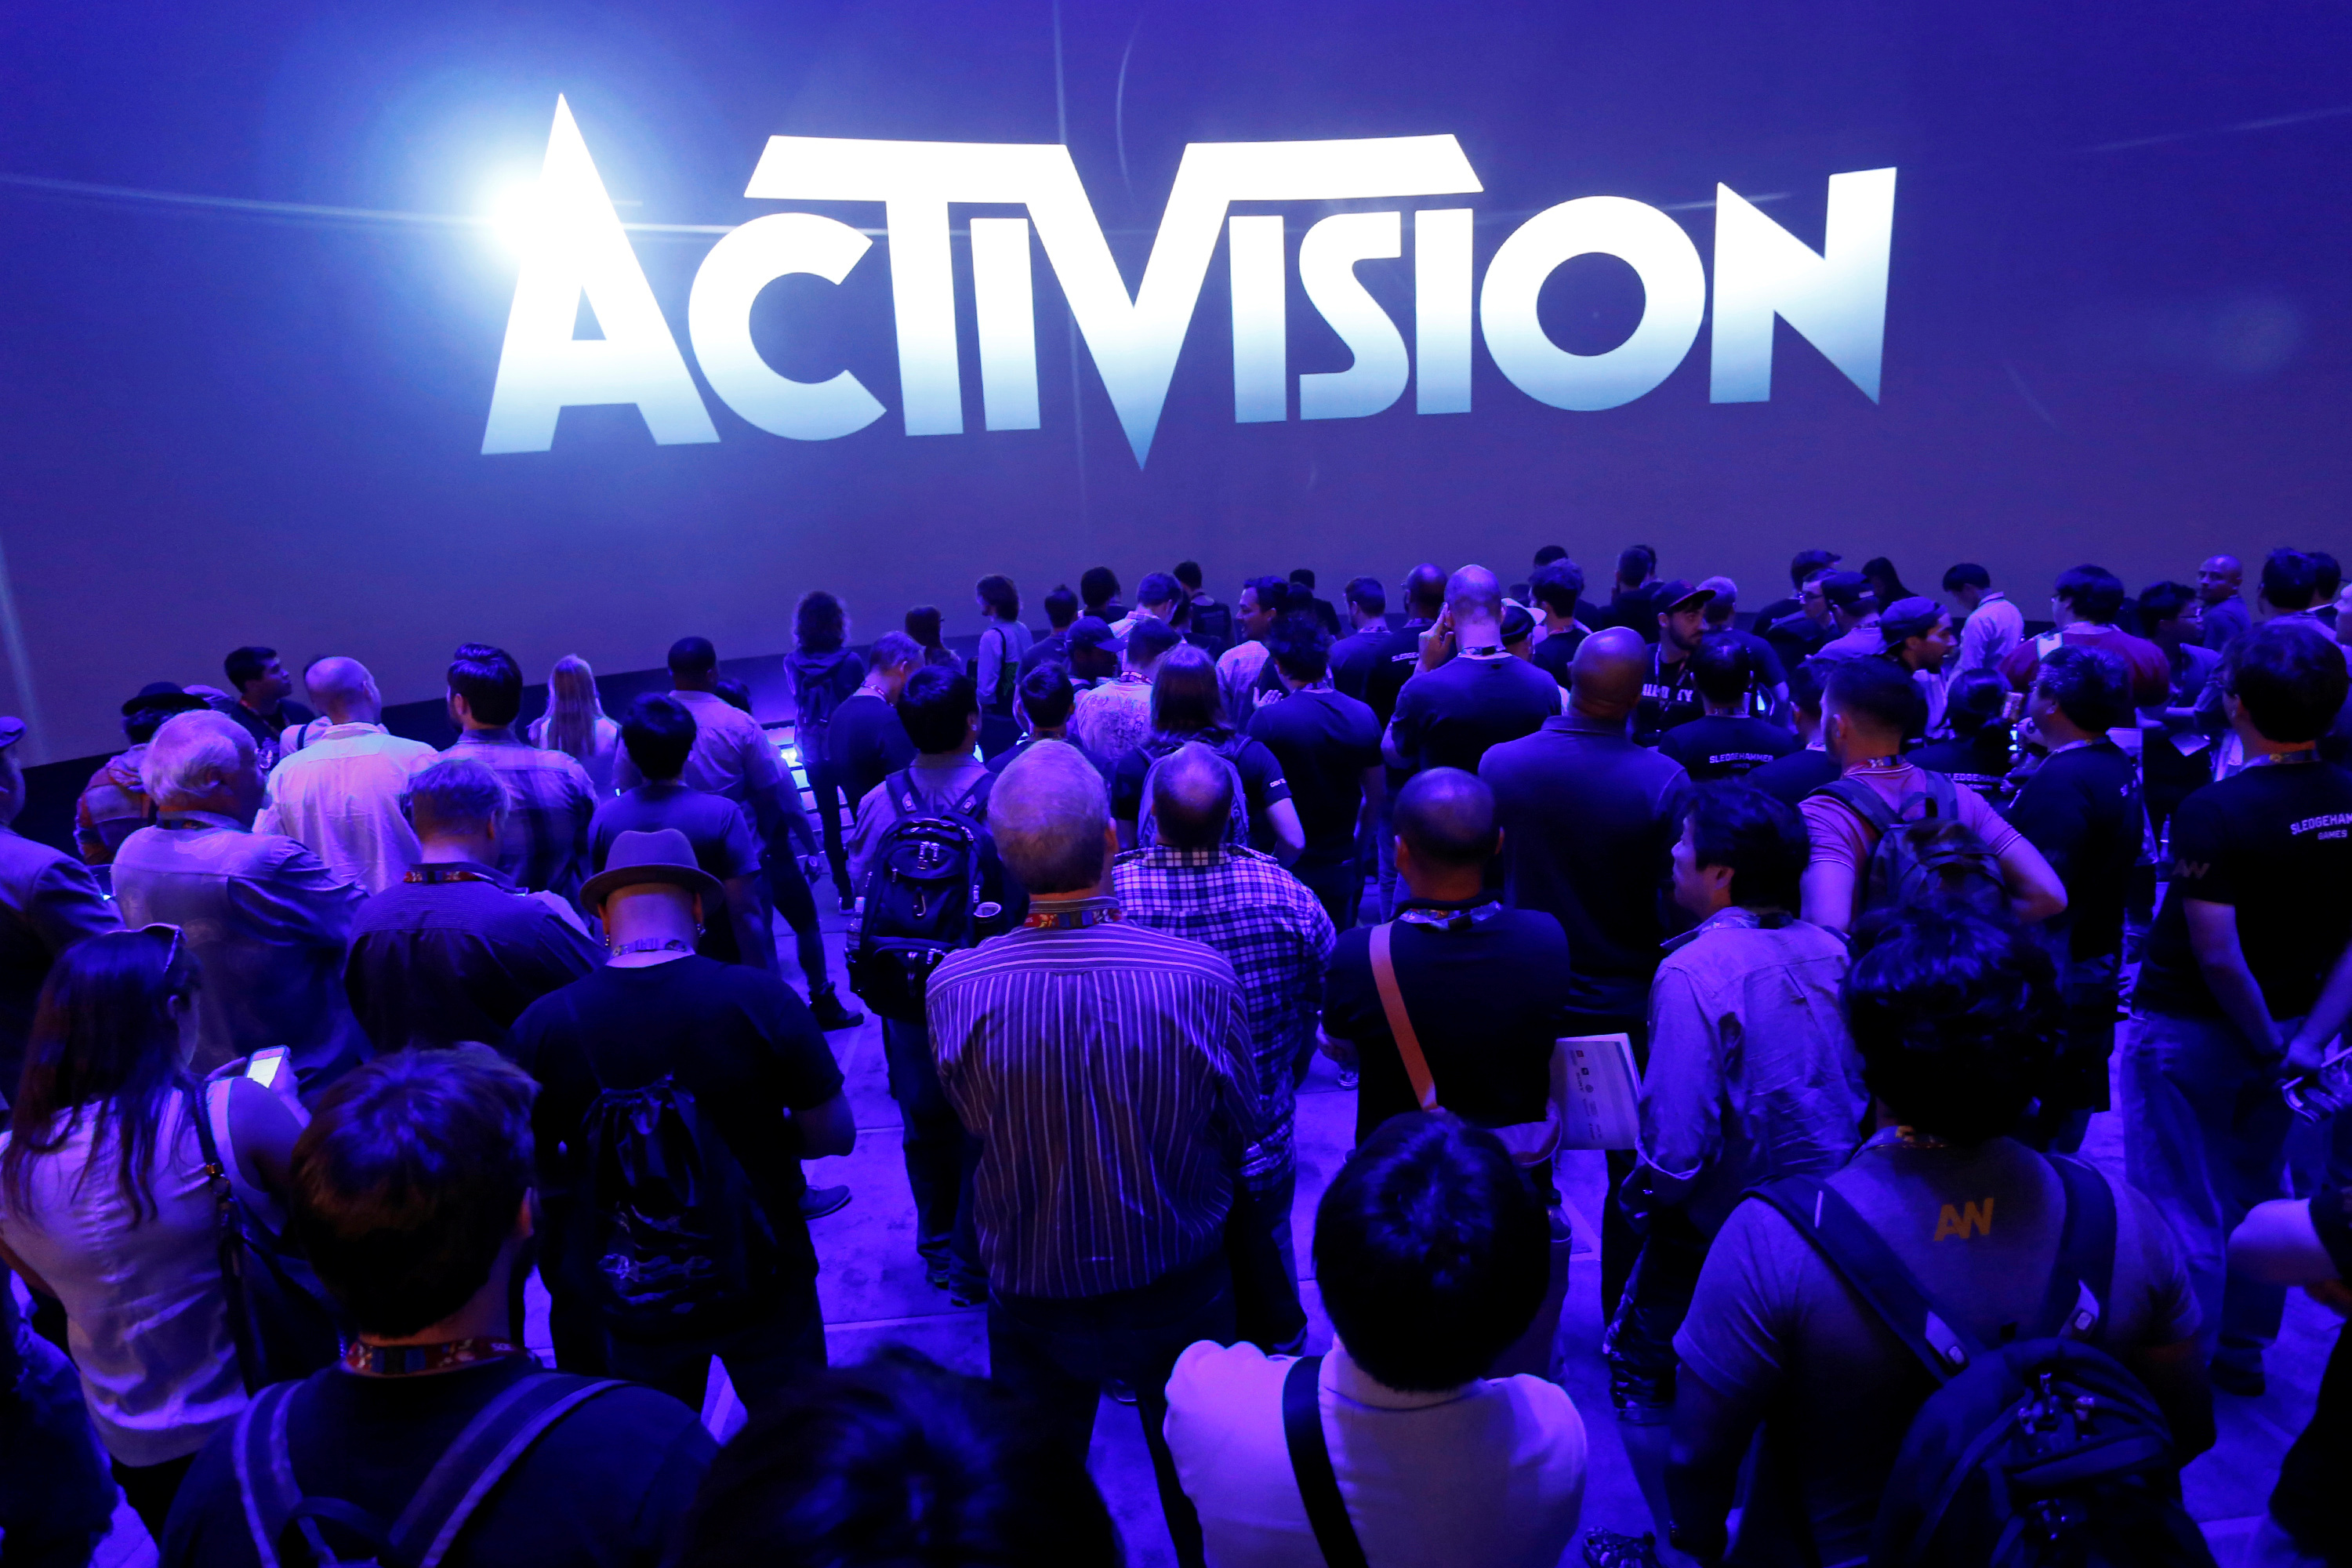 Crowd waits for video presentation at the Activision booth during the 2014 Electronic Entertainment Expo, known as E3, in Los Angeles